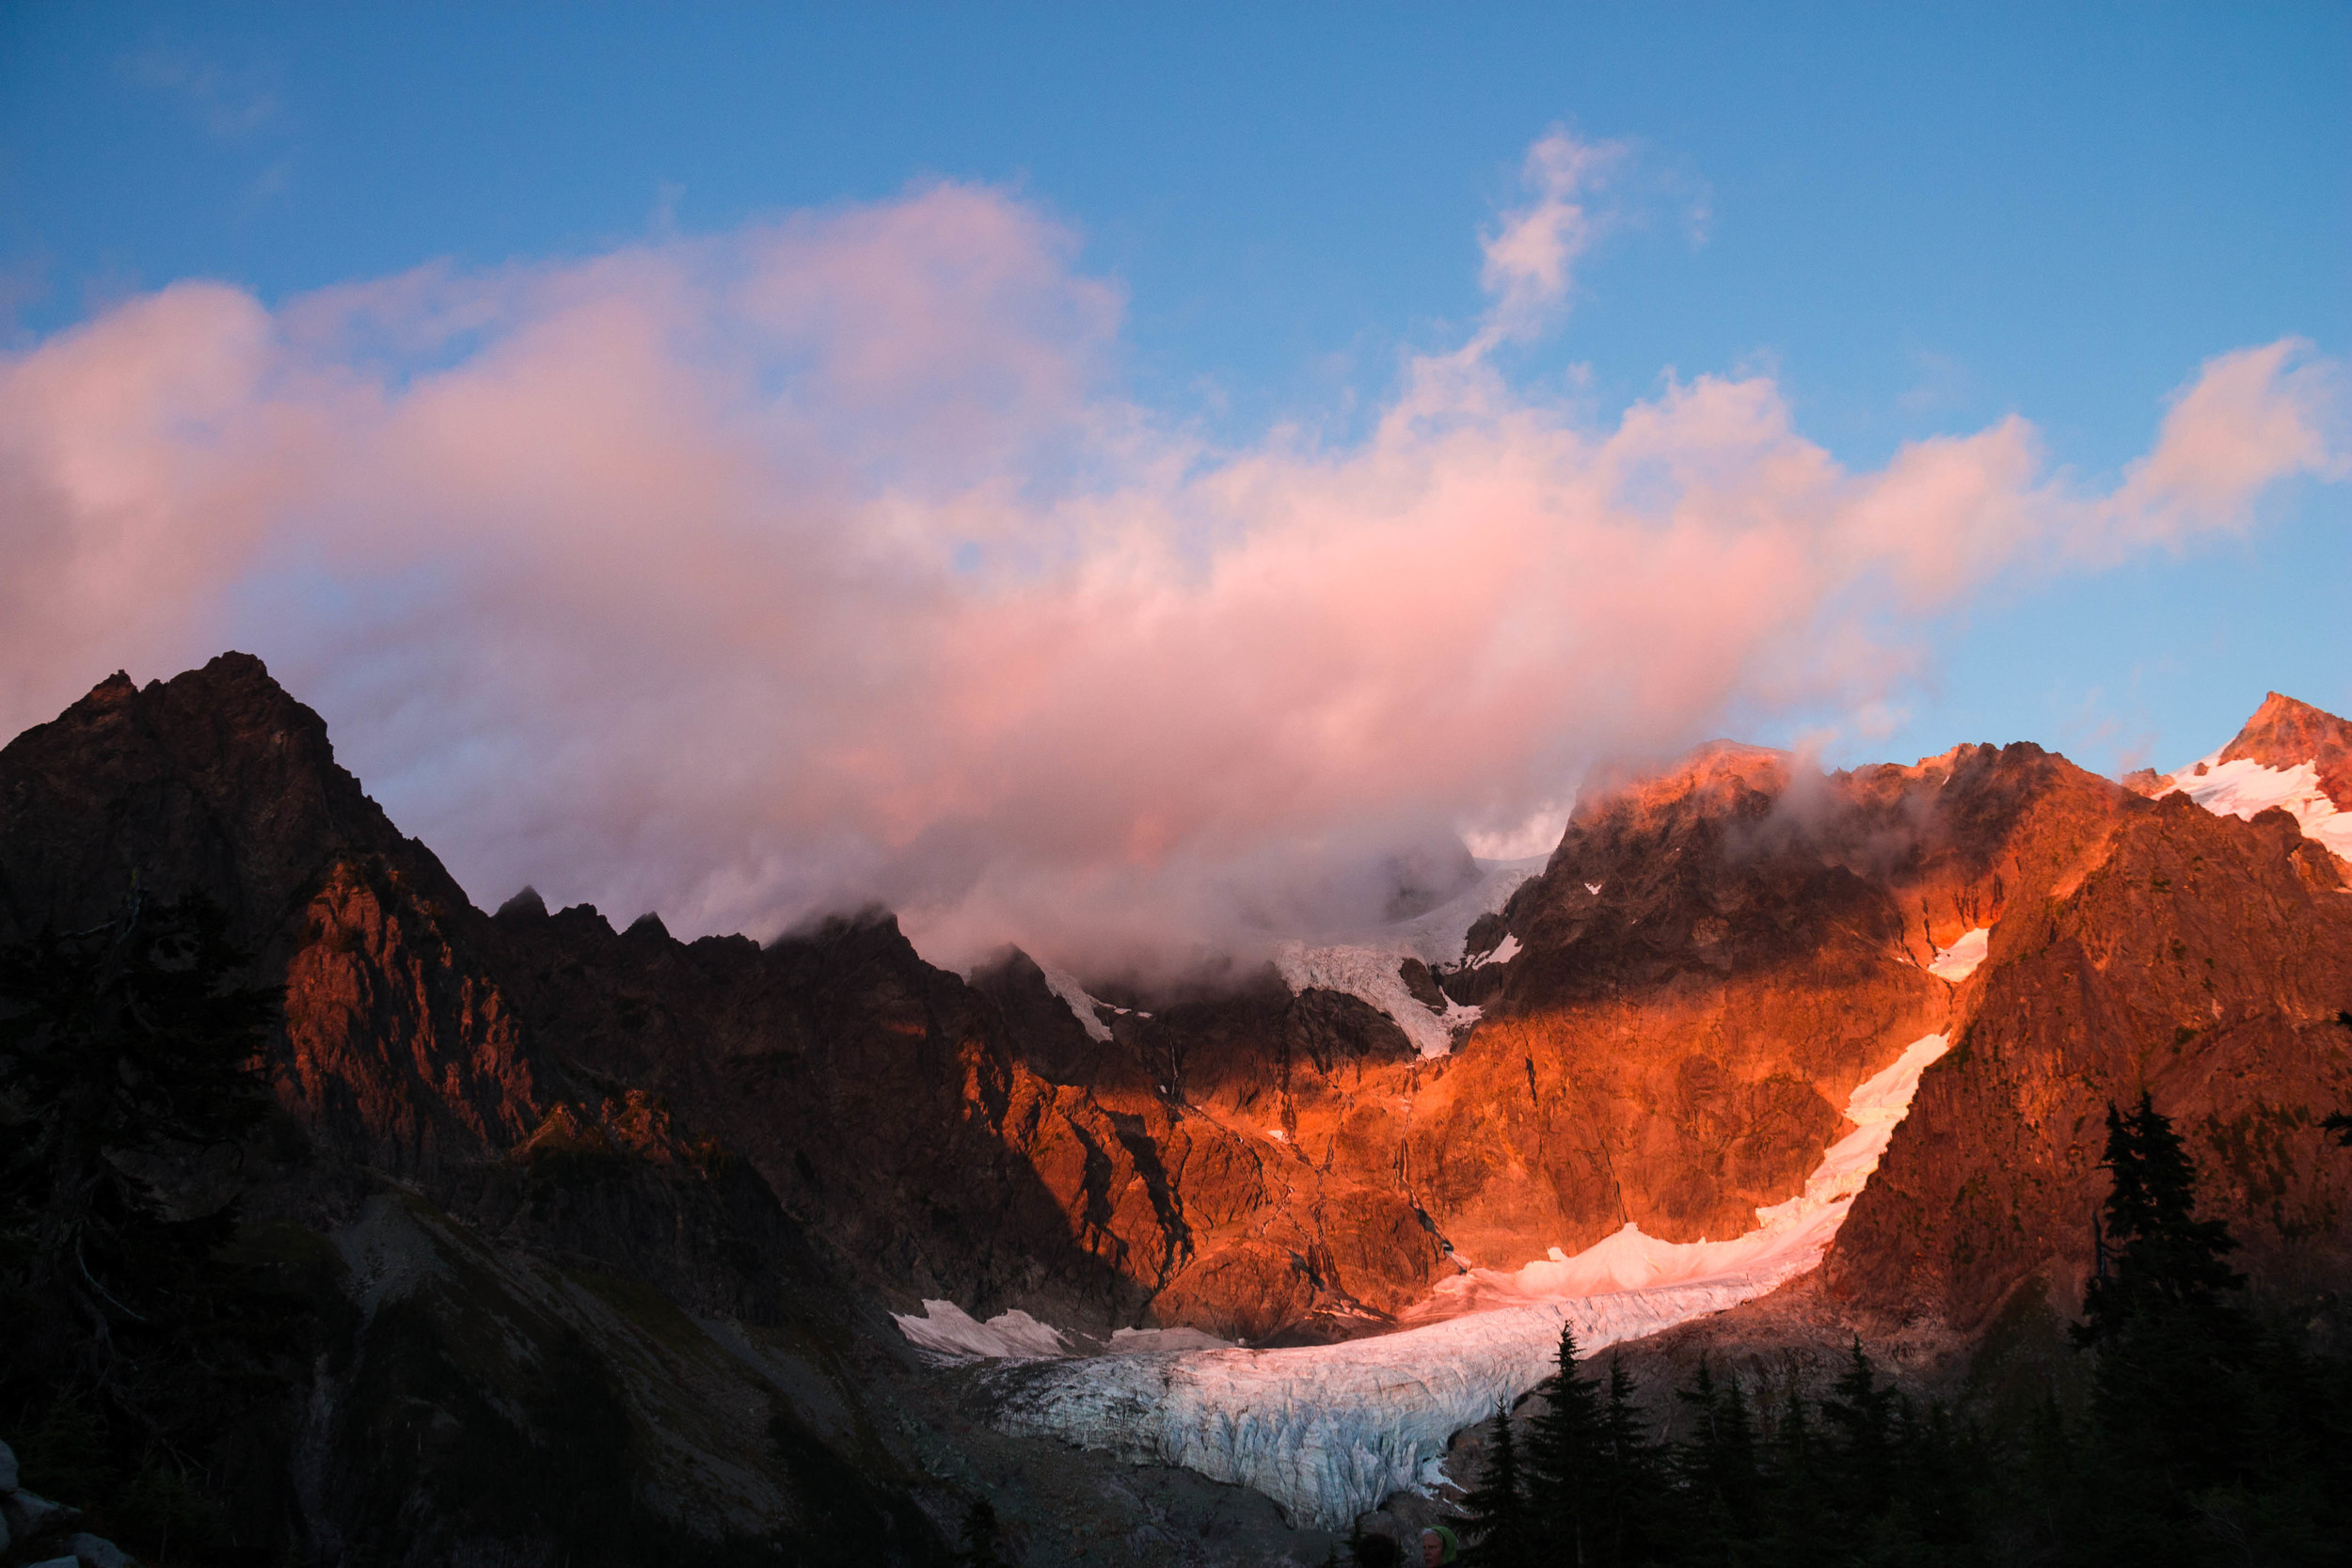 Shuksan sunset- sadly we only got one of these, since Shuksan was hidden by smoke the next day